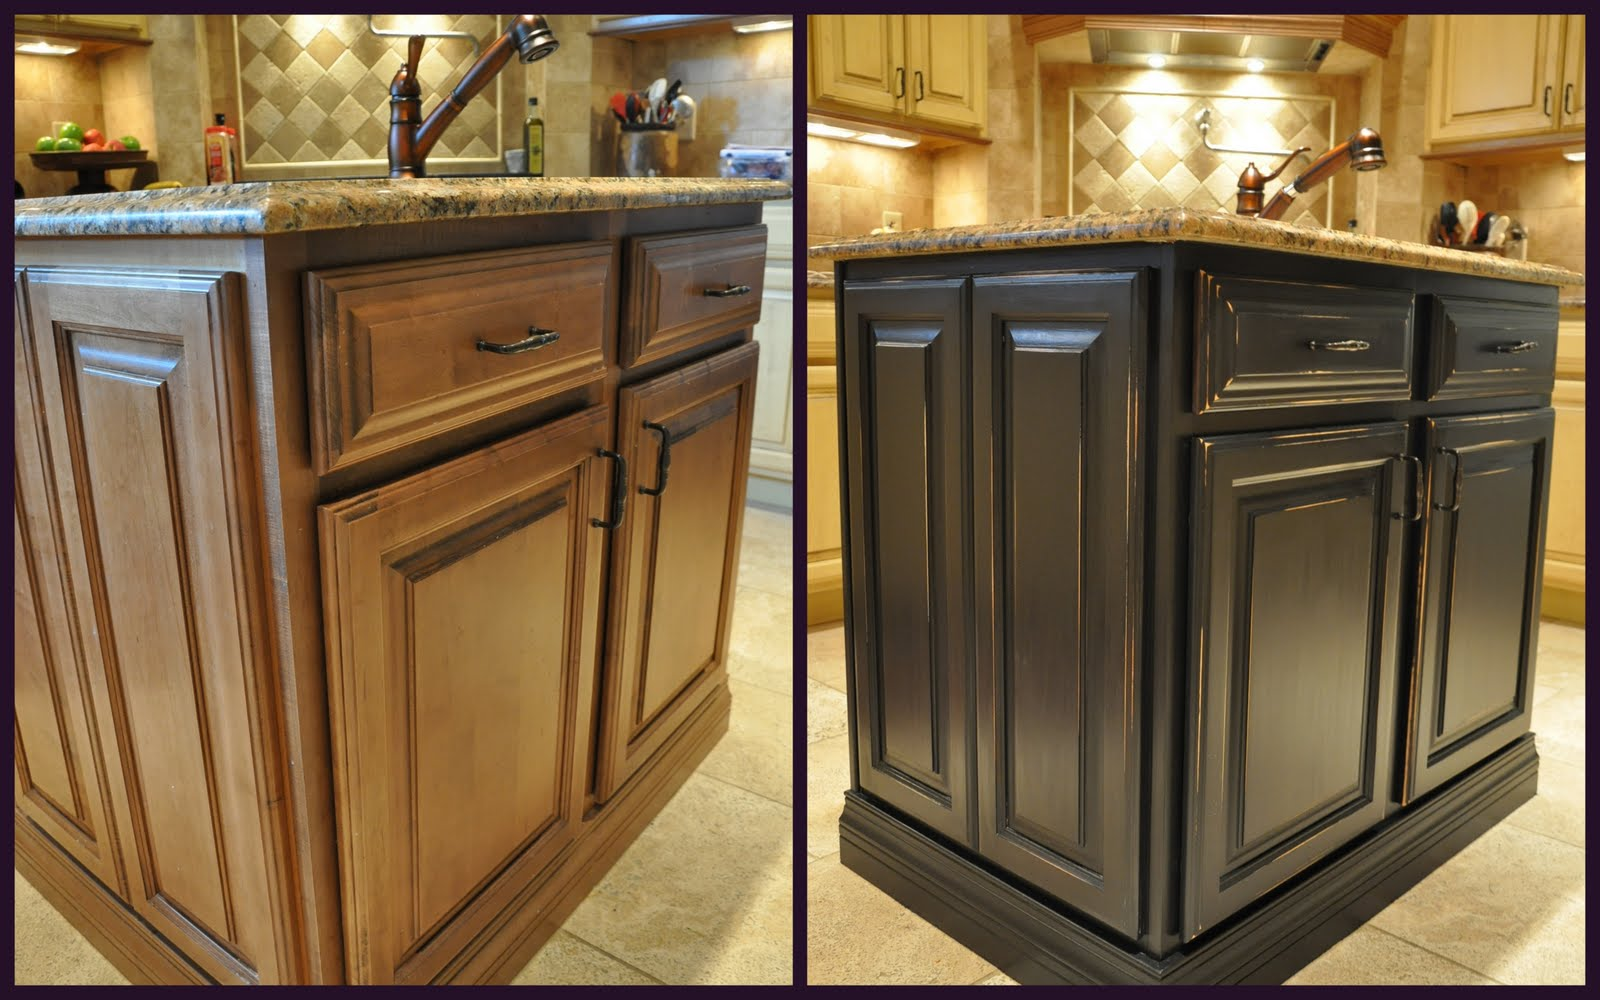 How To Paint A Kitchen Island Part Evolution Of Style - Refinishing kitchen cabinets before and after